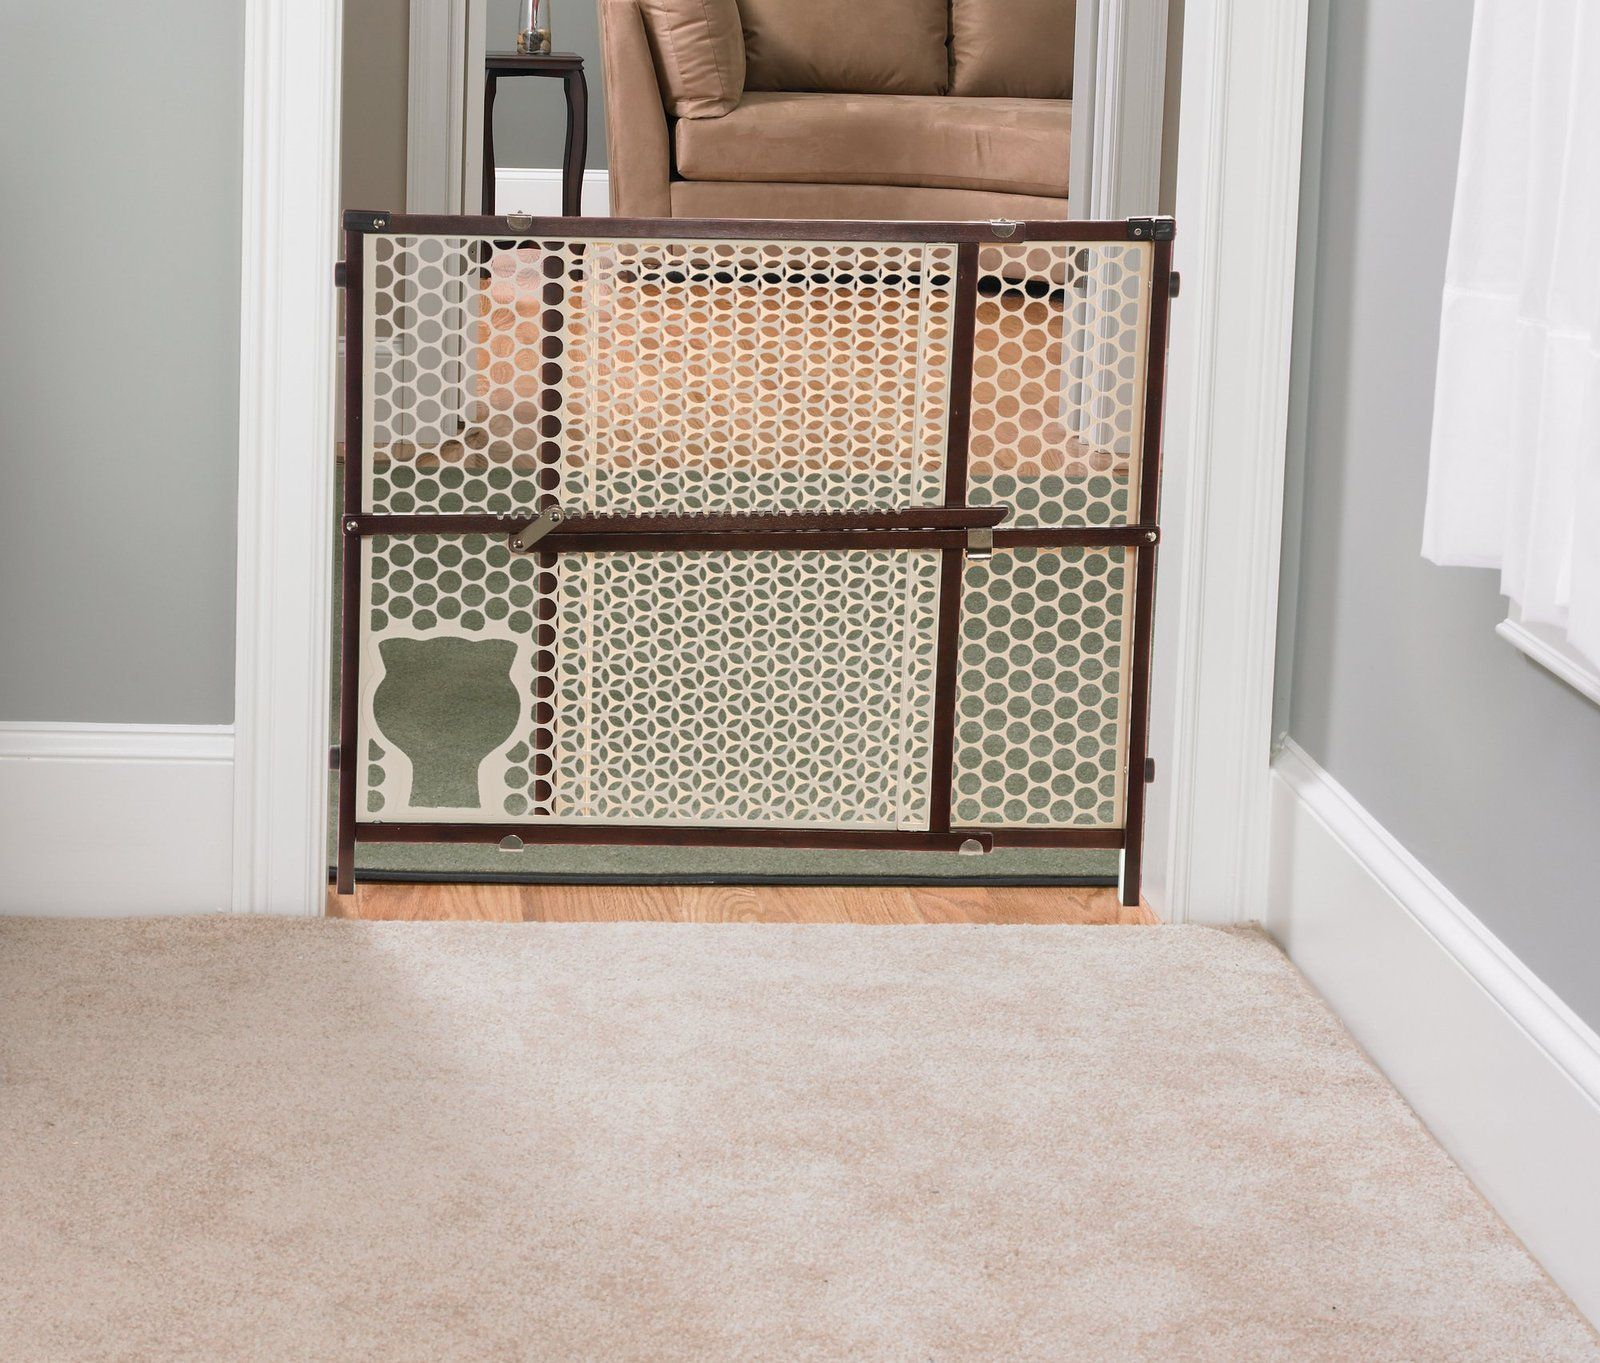 Delightful The Safety 1st Baby N Pet Gate Allows Small Pets To Pass Through,